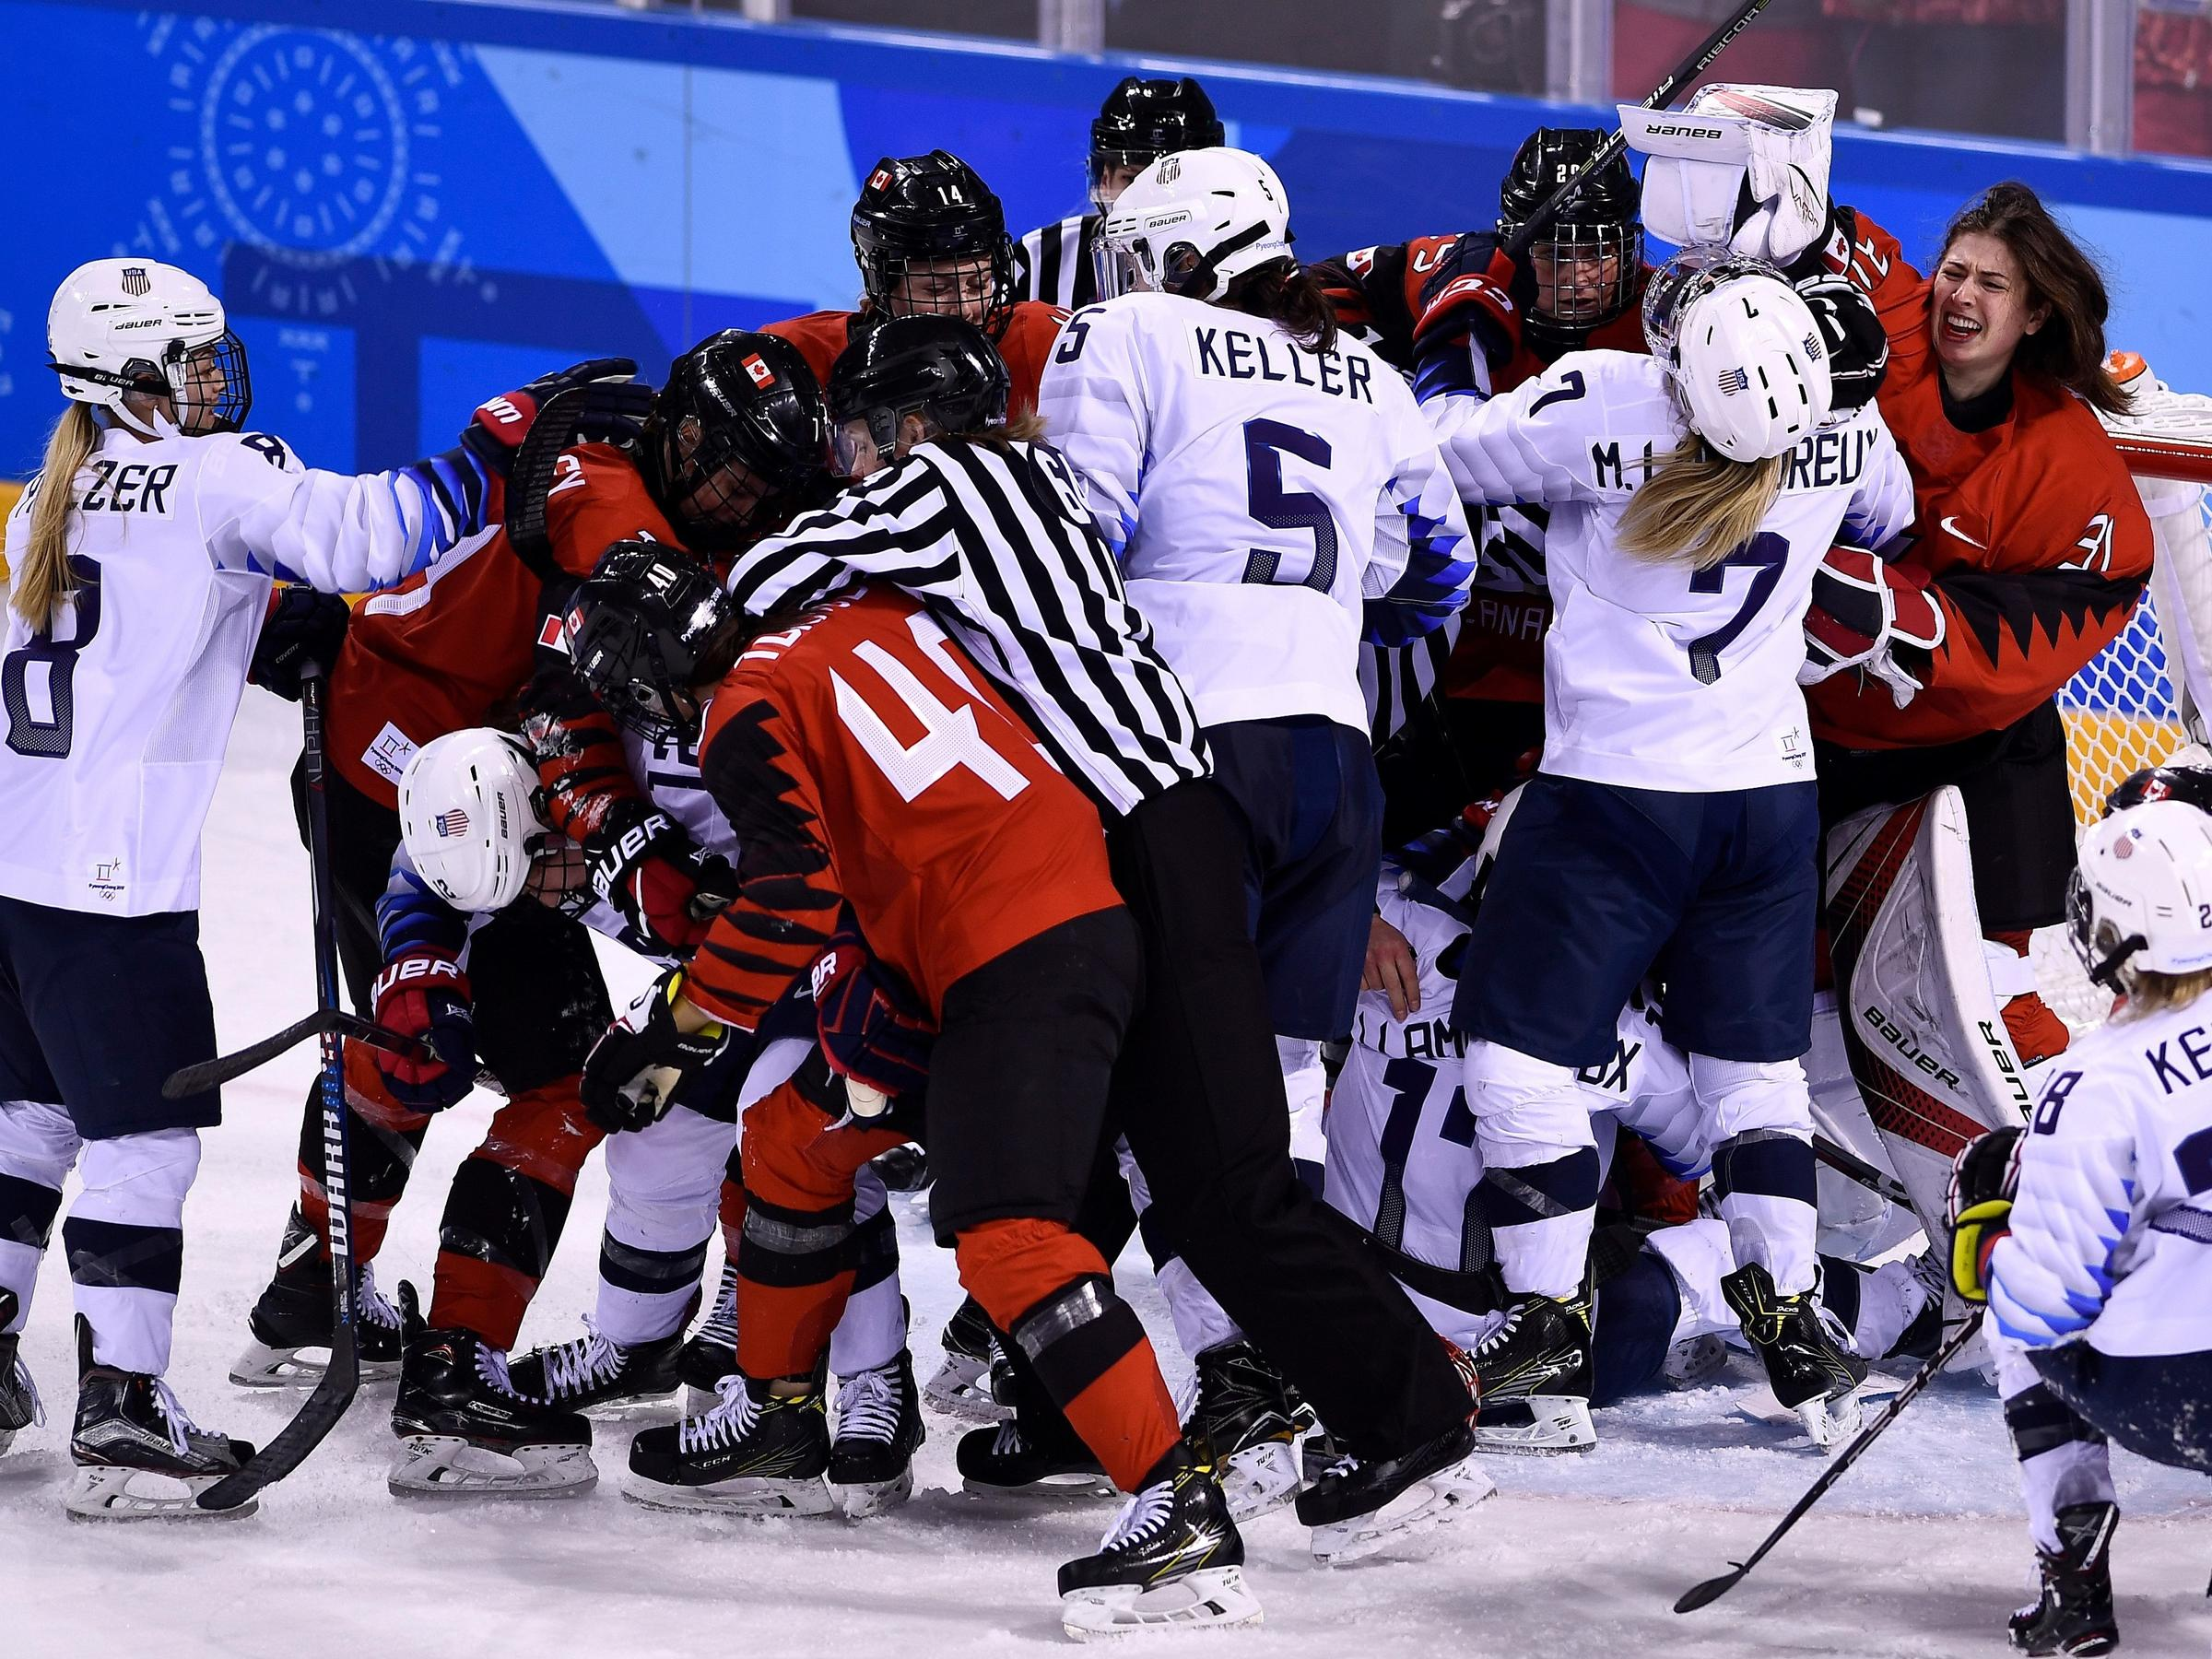 United States women's hockey strikes gold